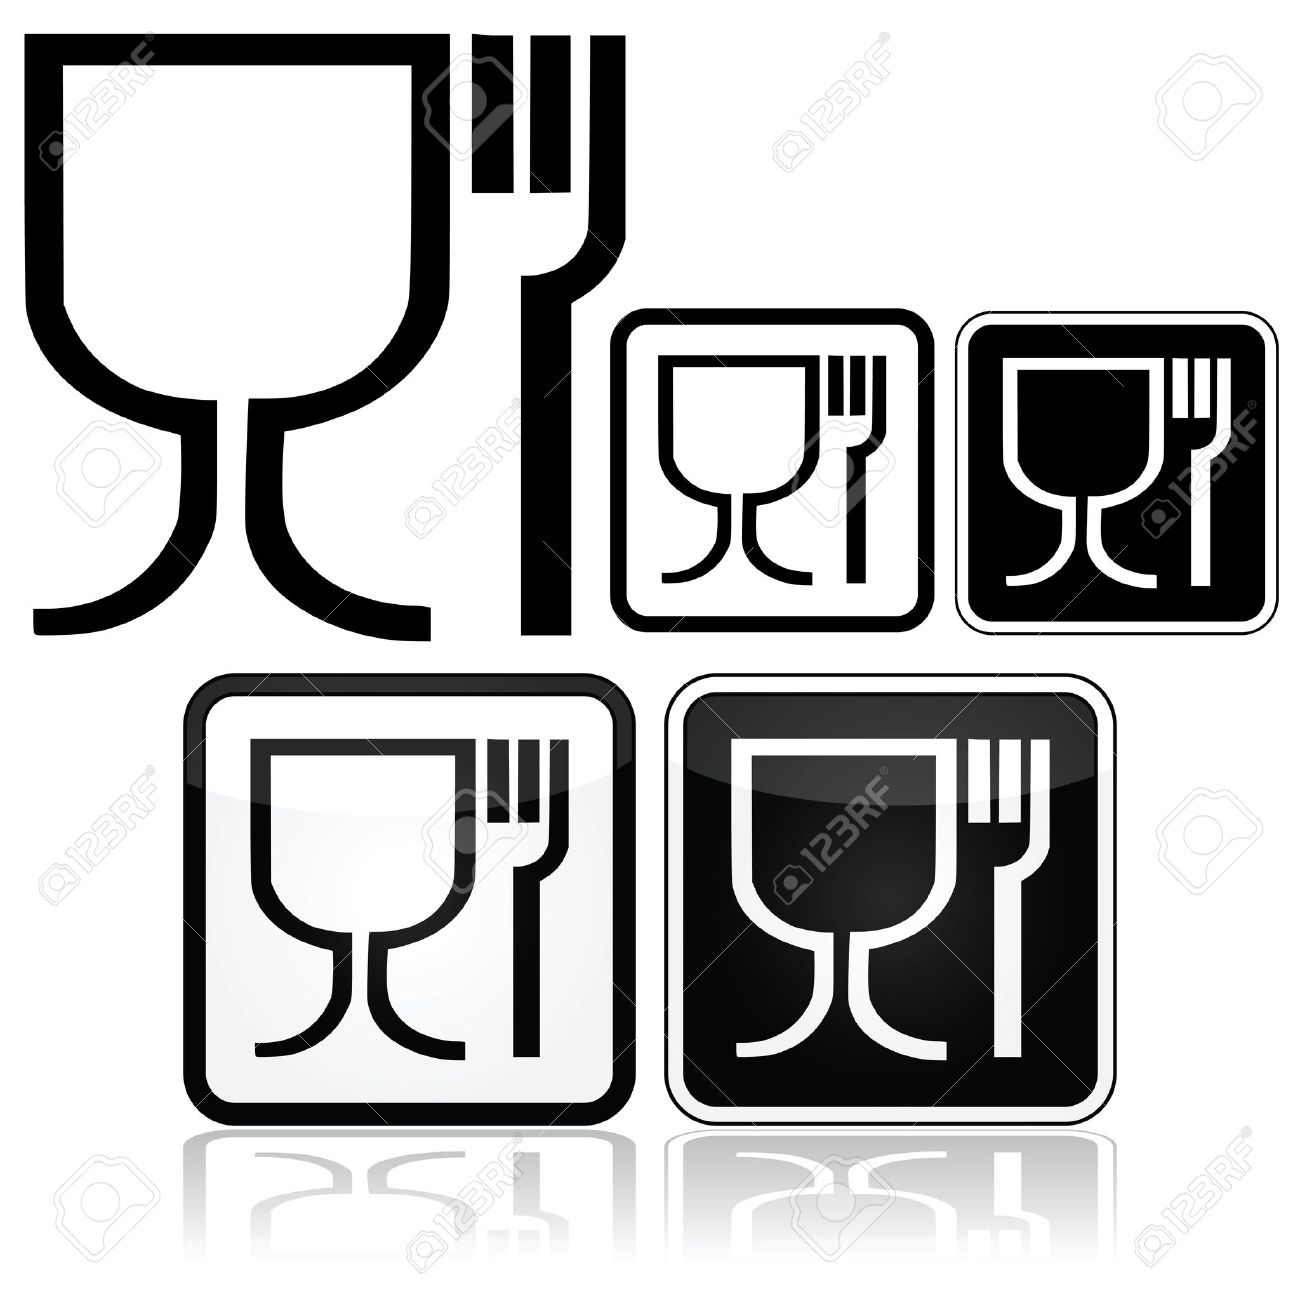 Icon Set Showing Different Design Styles For The Food Safe Symbol